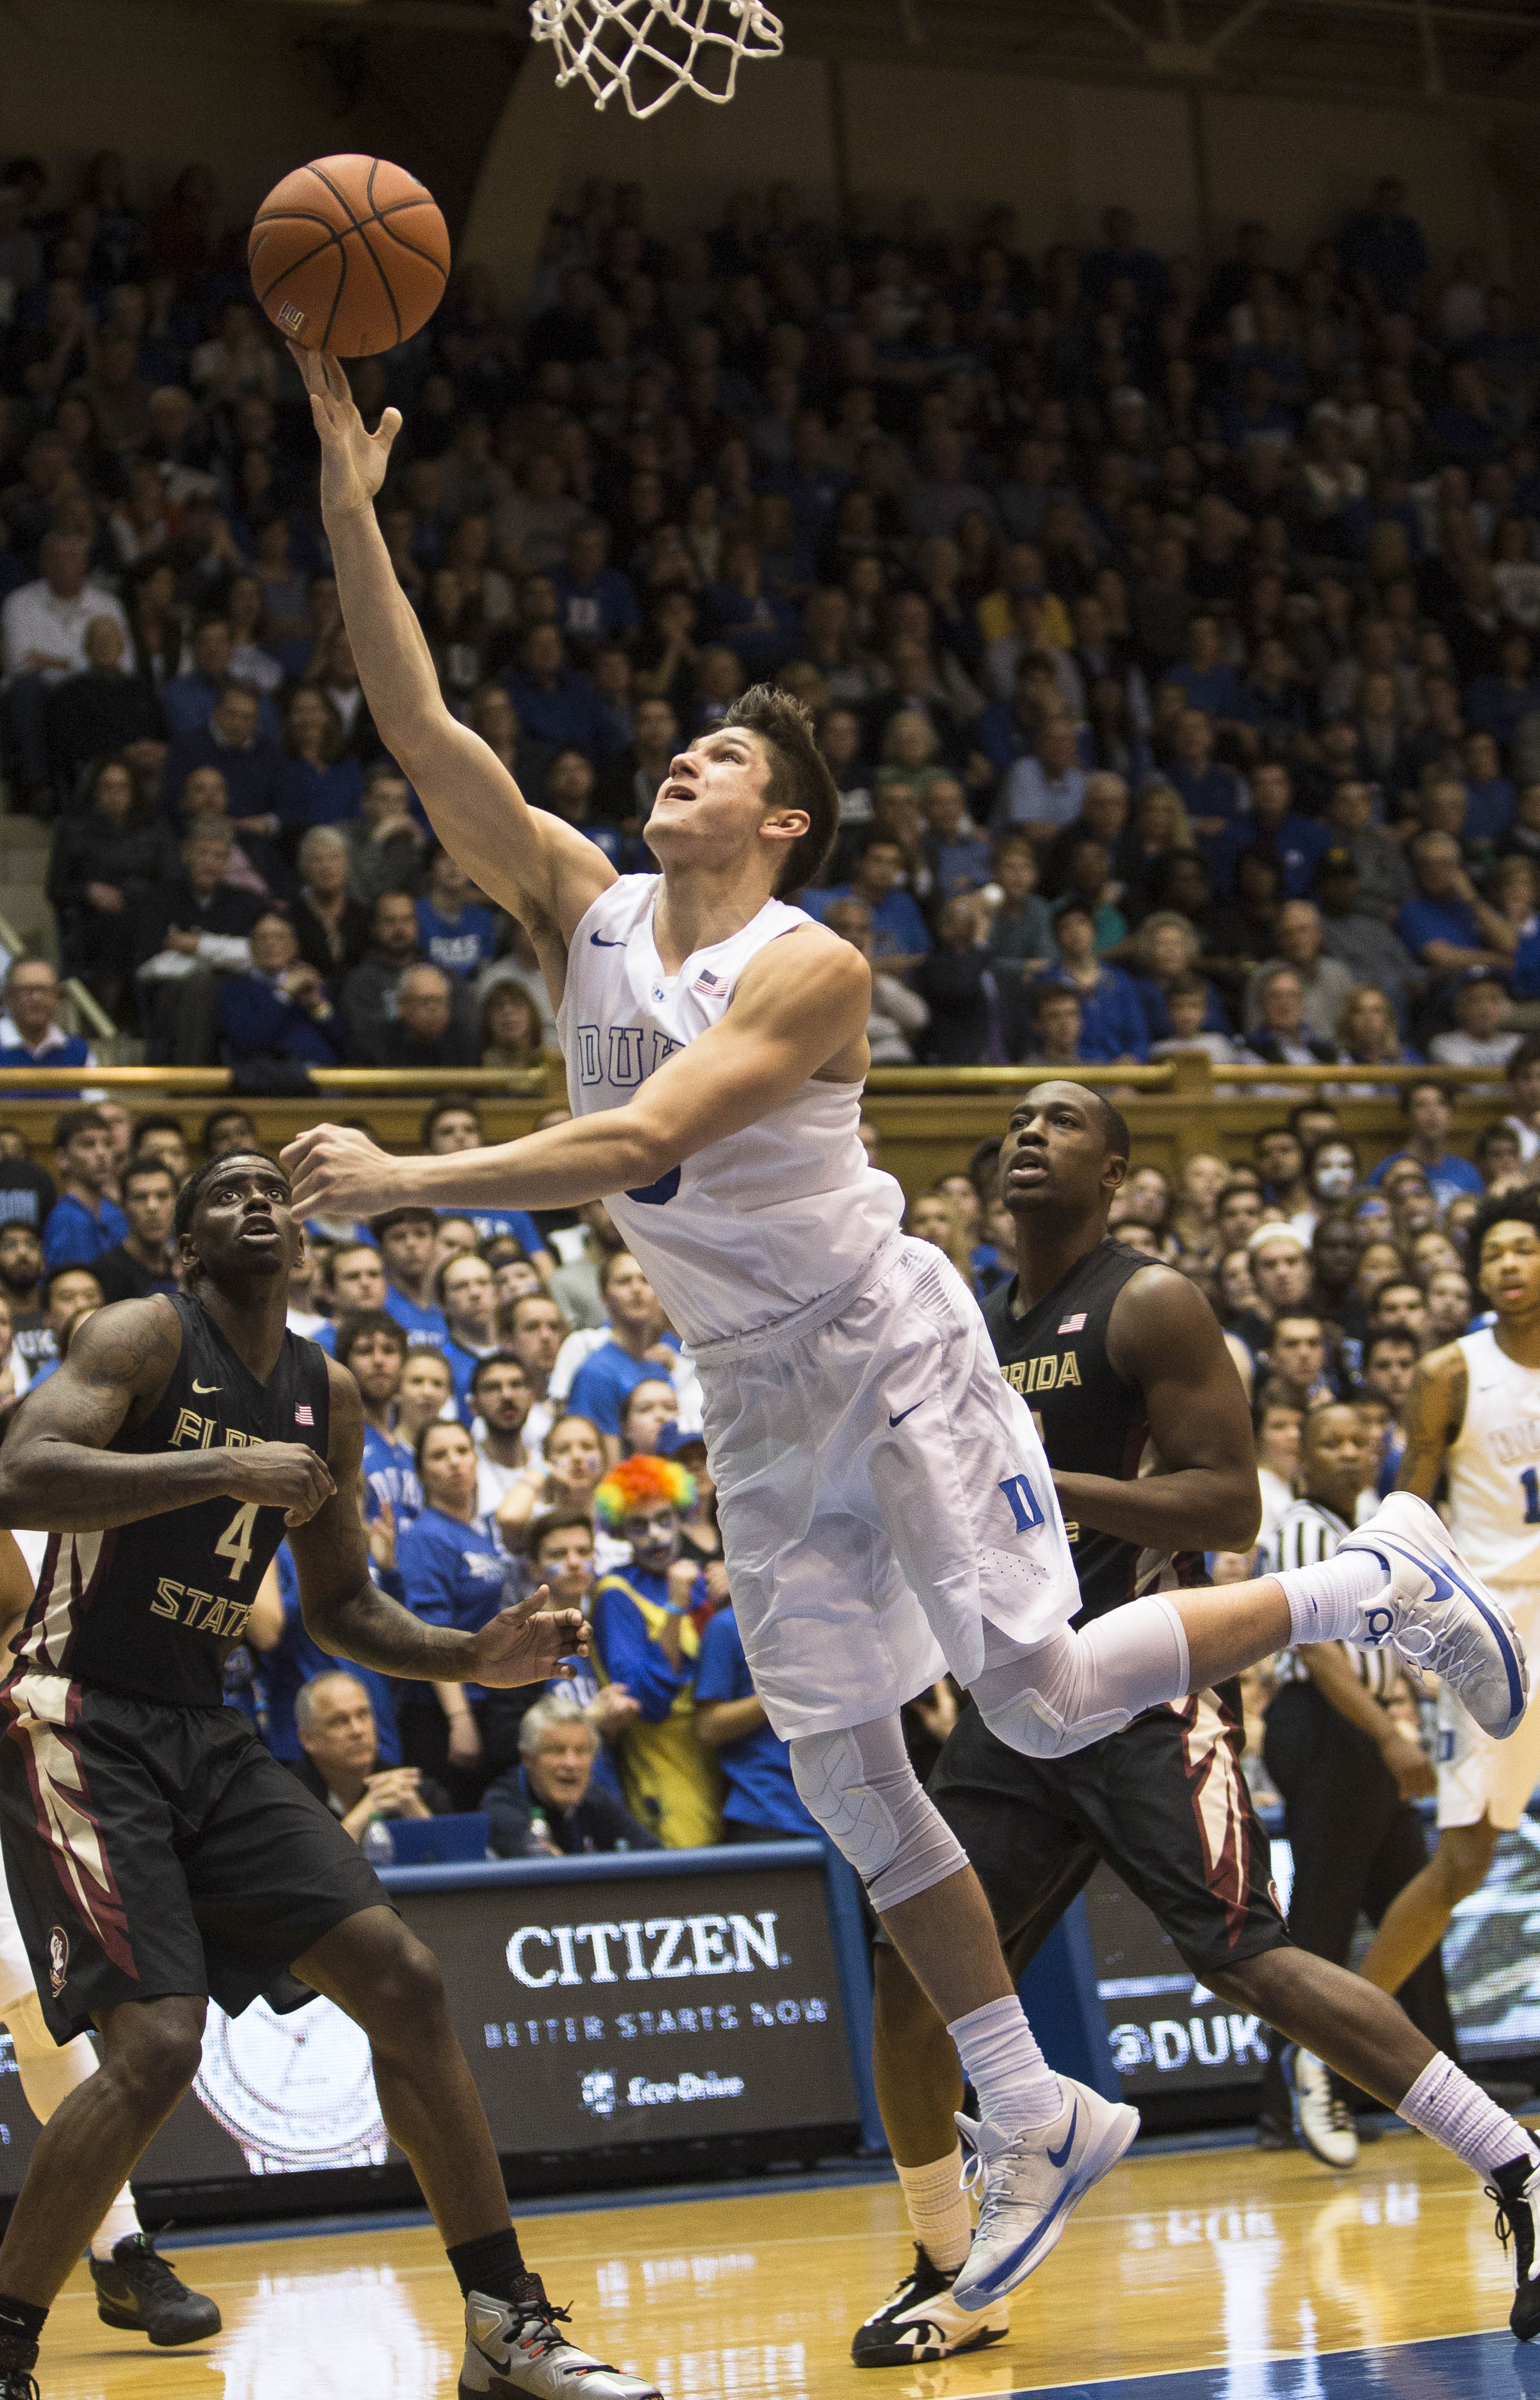 Duke's Grayson Allen attempts a layup as Florida State's Dwayne Bacon (4) and Florida State's Montay Brandon, right, watch during the second half of an NCAA college basketball game in Durham, N.C., Thursday, Feb. 25, 2016. Duke defeated Florida State 80-6